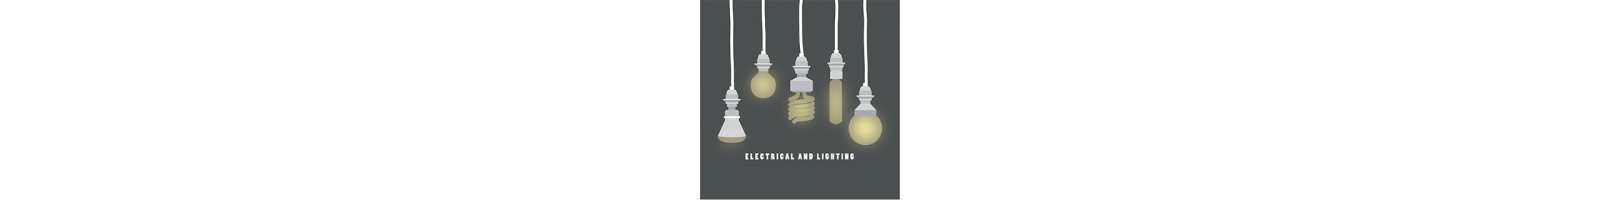 Electrical Appliances & Lighting